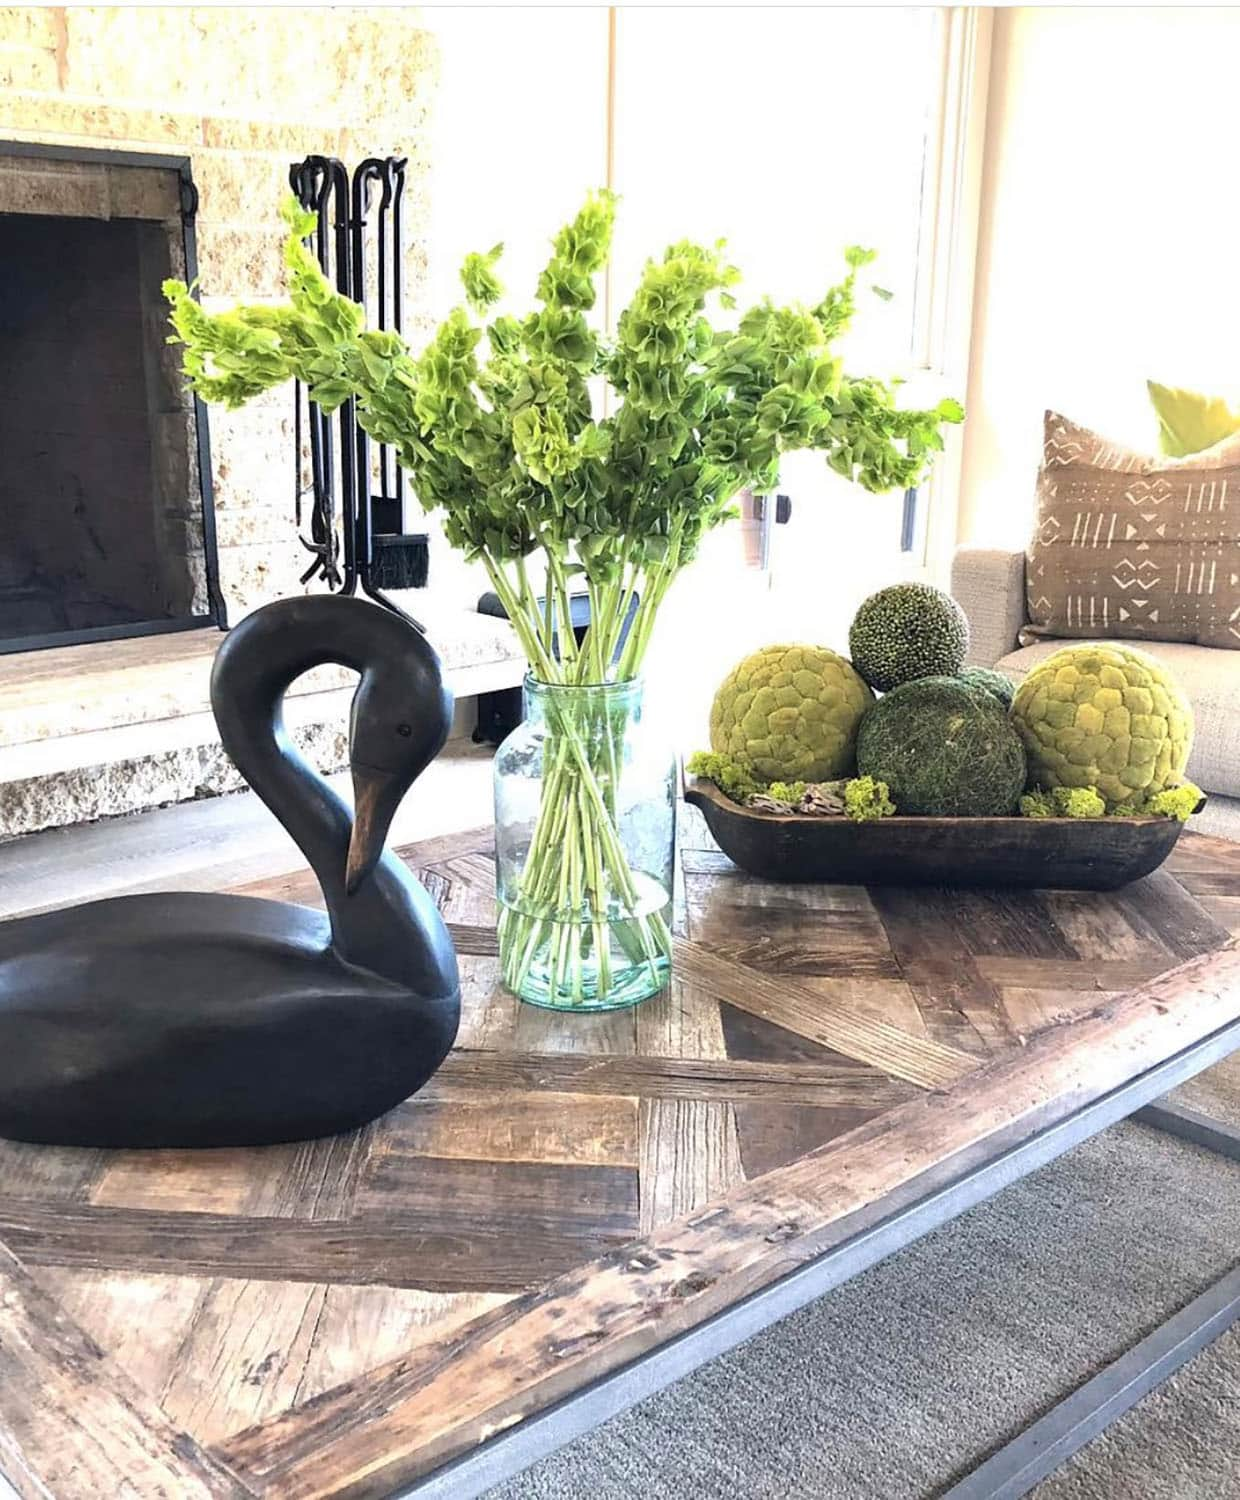 cindy hattersley designed coffee table with bells of Ireland